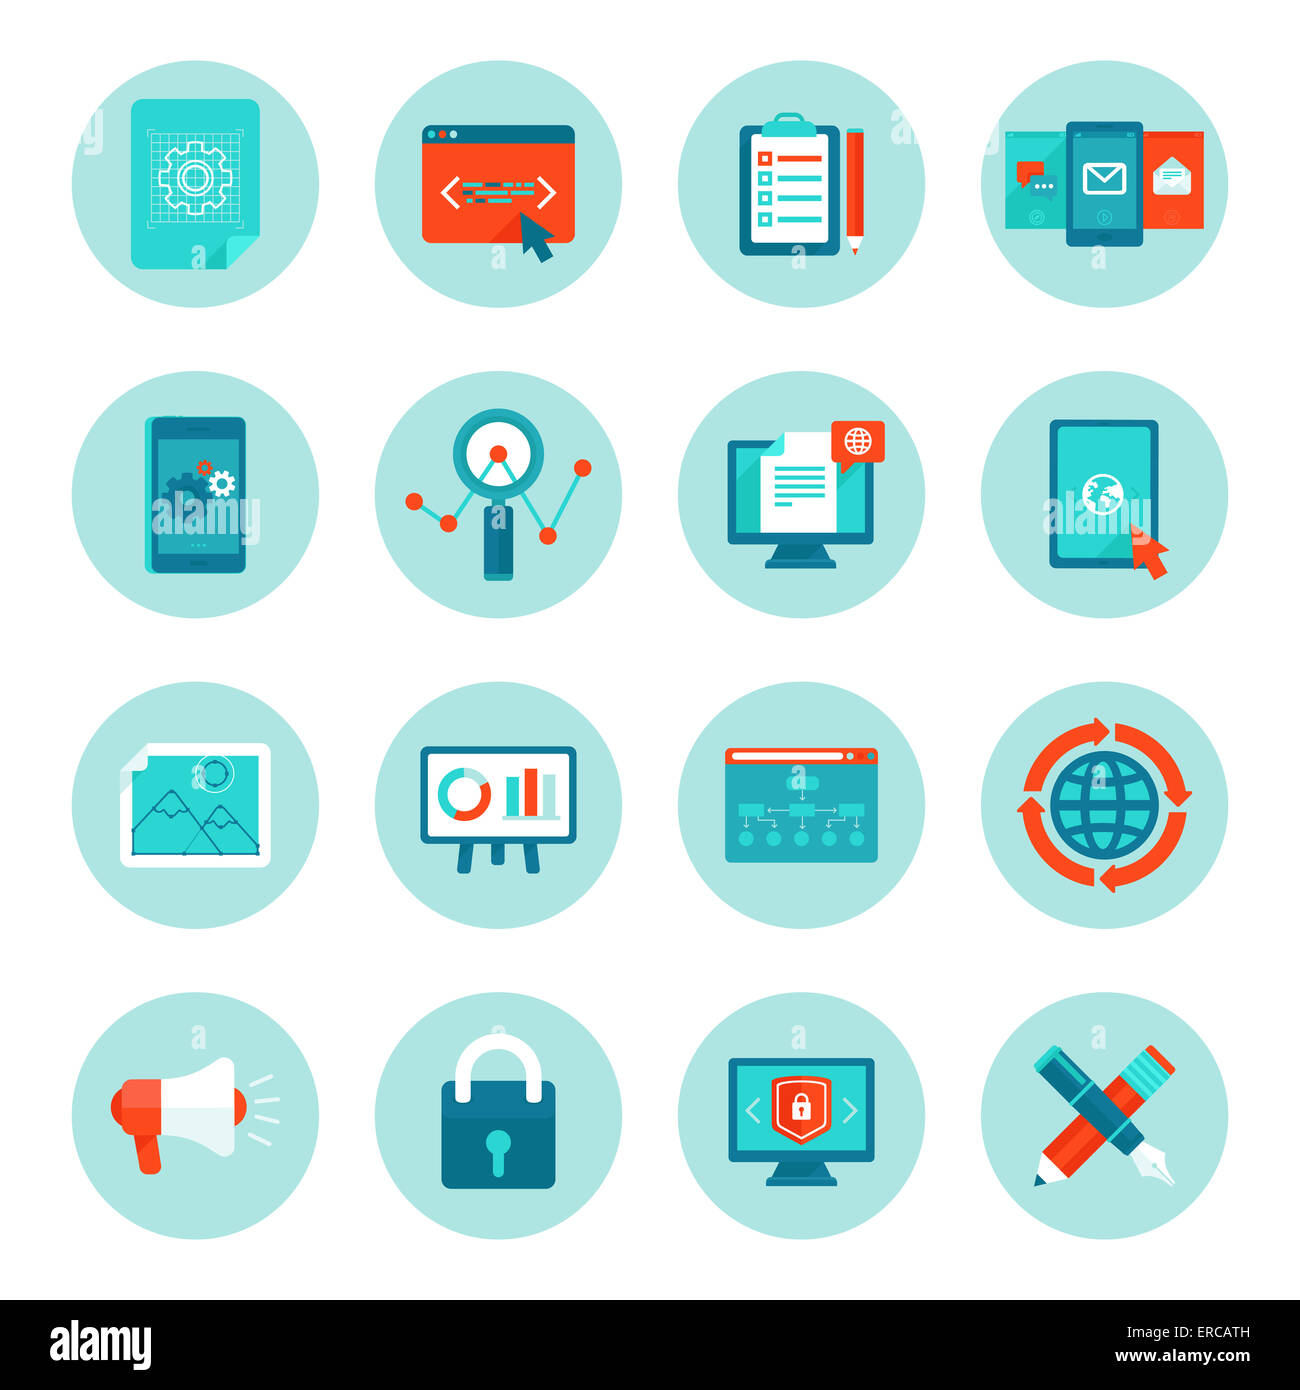 Web development and digital marketing icons in flat style - illustrations and signs on circle background - Stock Image